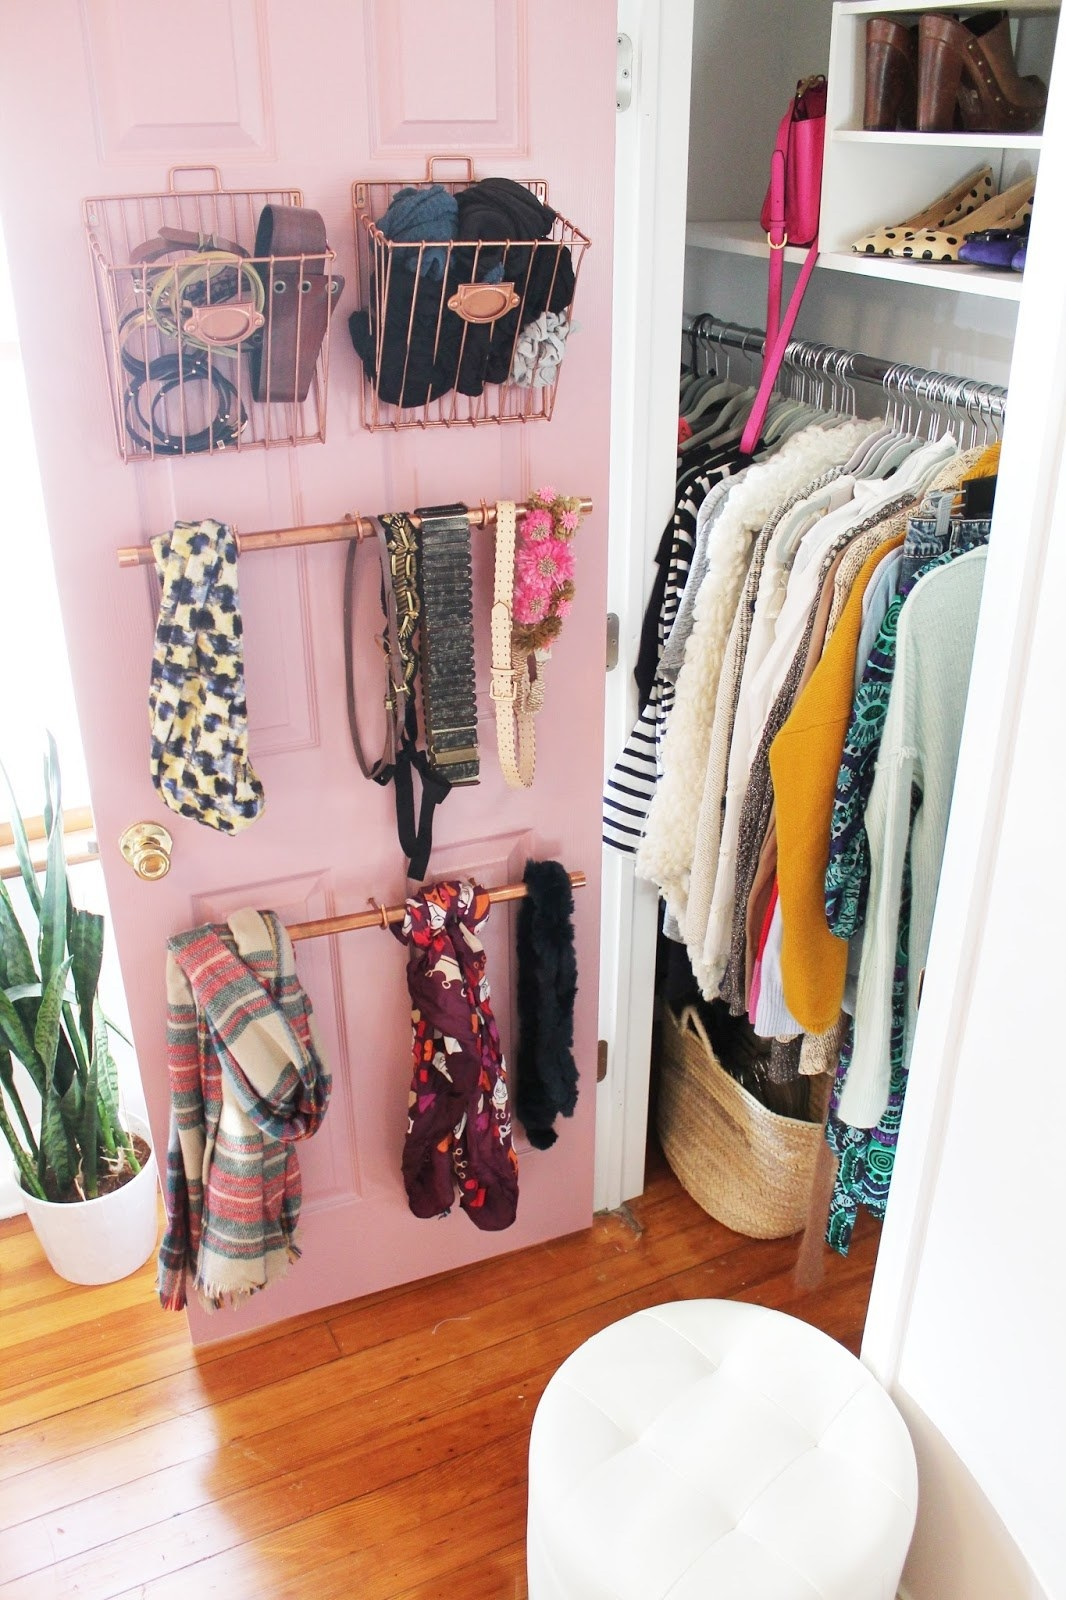 Cute pink closet door with two copper baskets holding belts and tights, and two copper bars holding scarves and other belts